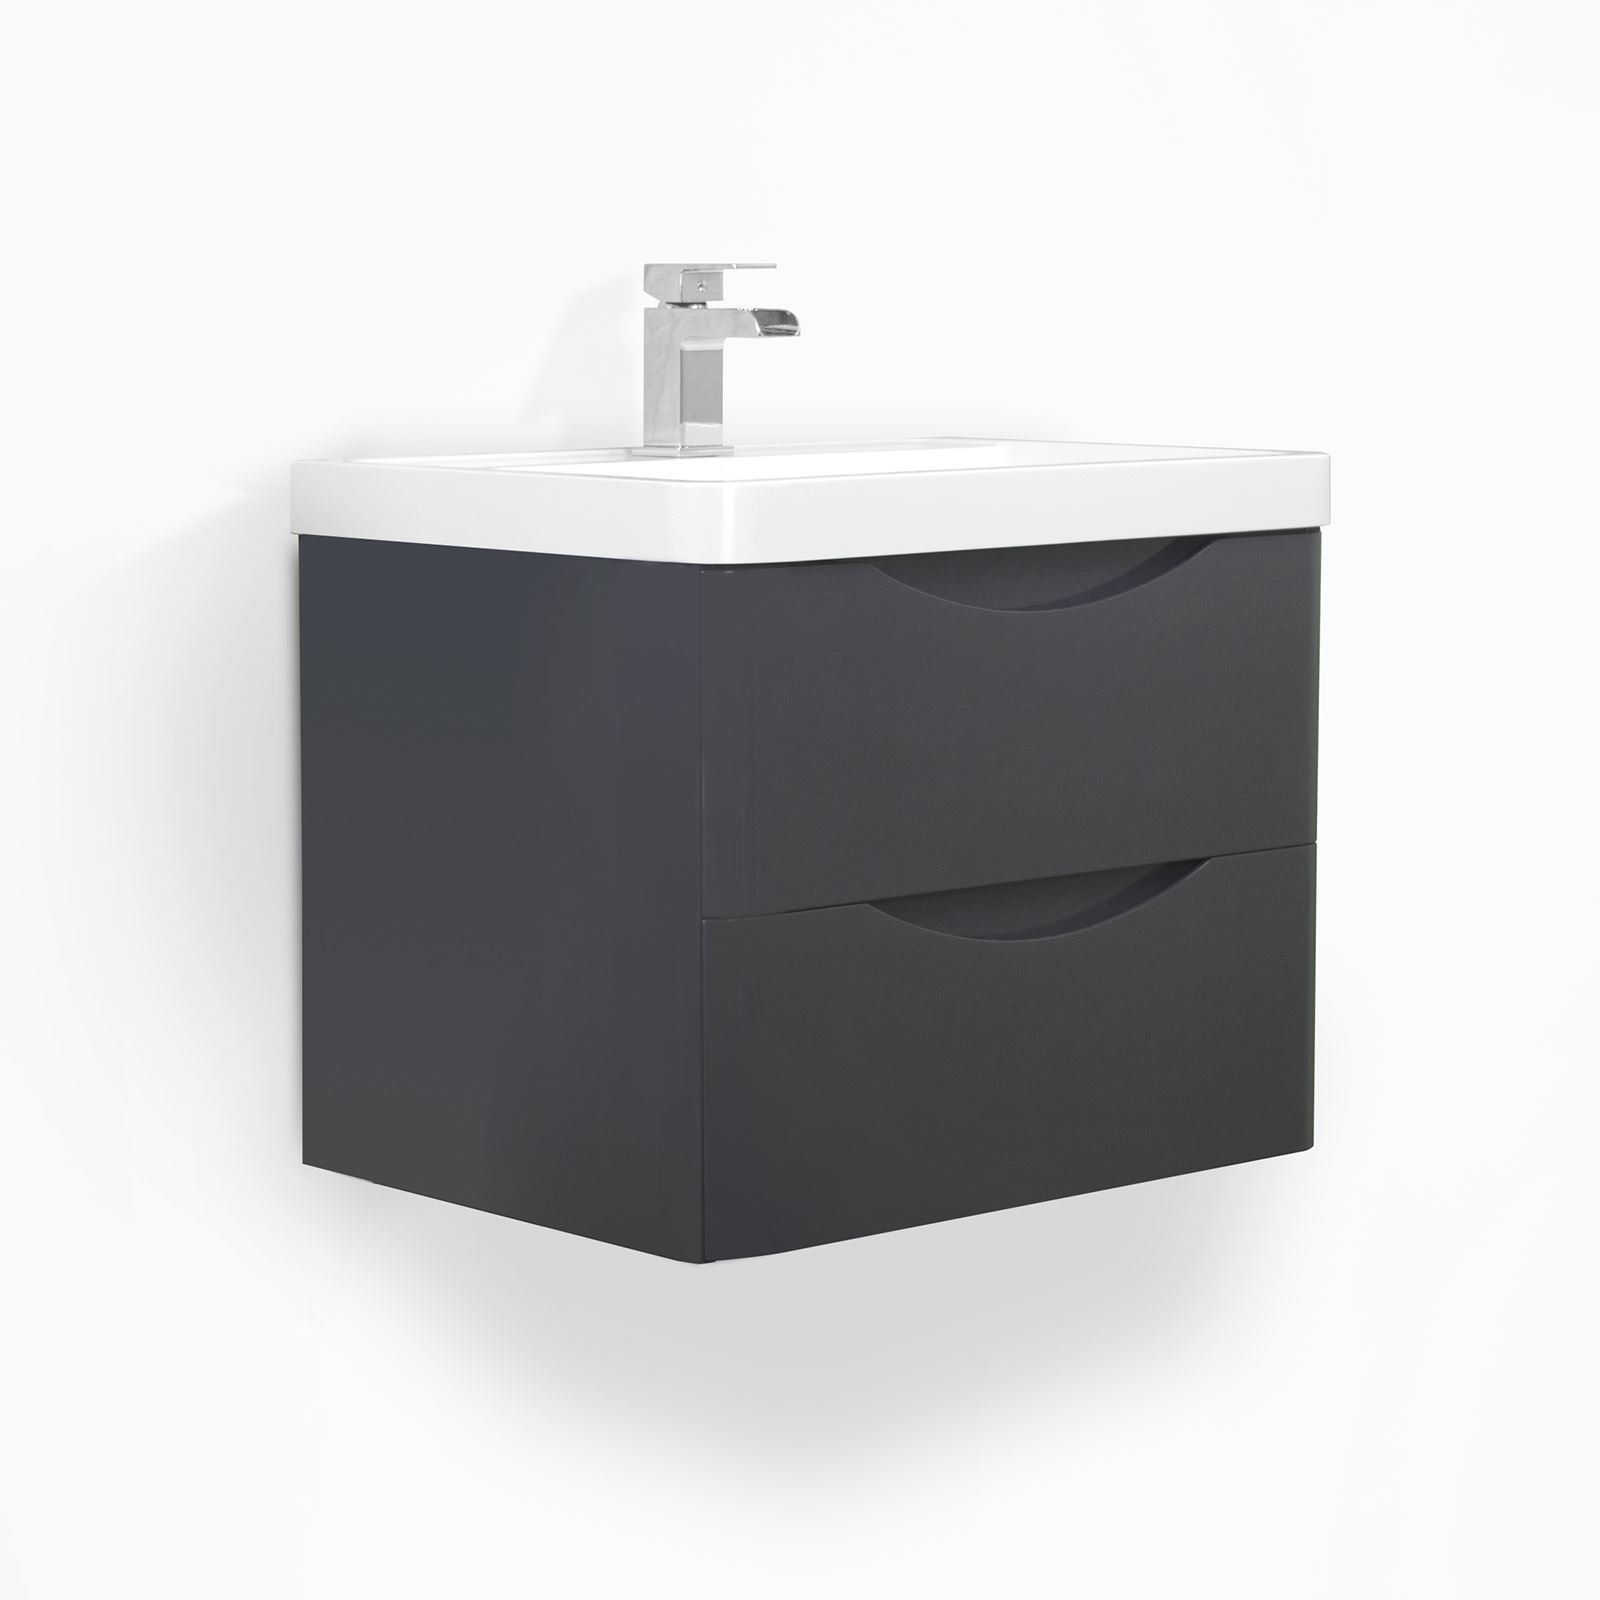 Bathroom cabinets black gloss interior design - Bathroom cabinets black gloss ...